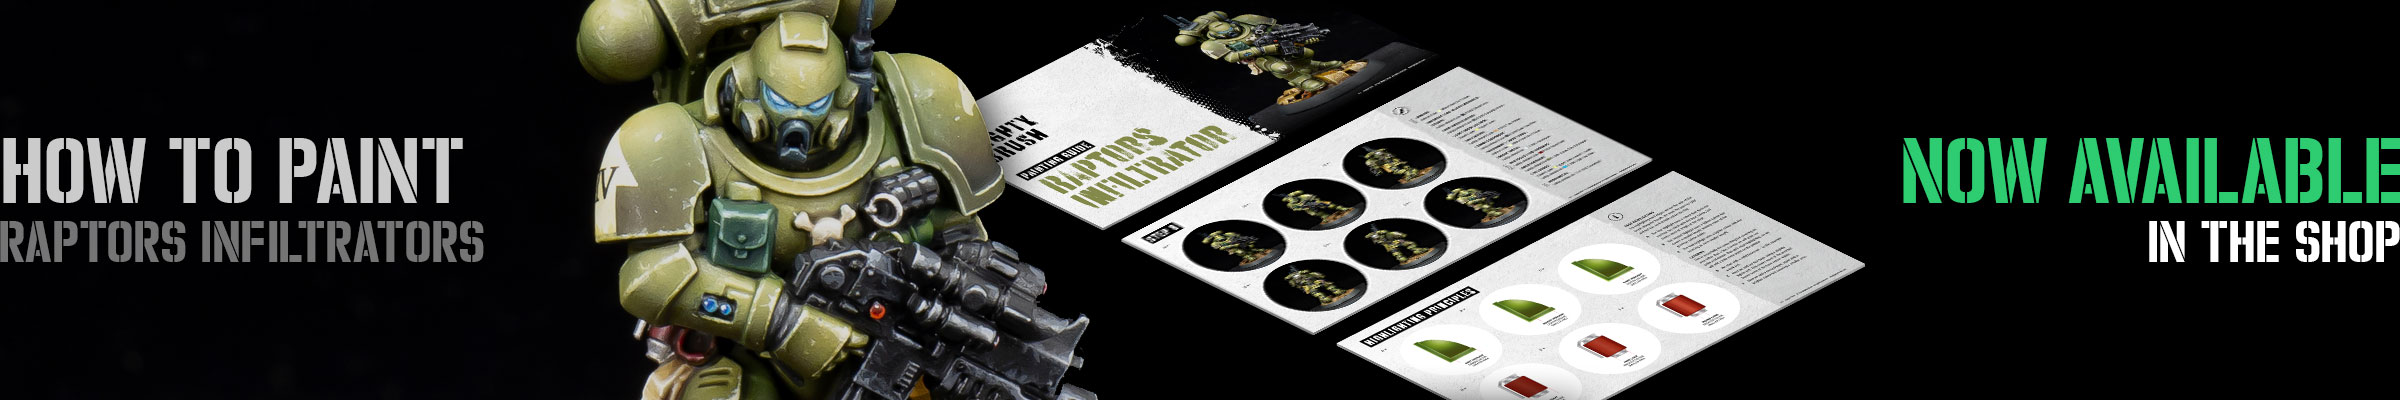 How to paint Raptors Infiltrators now available in the shop